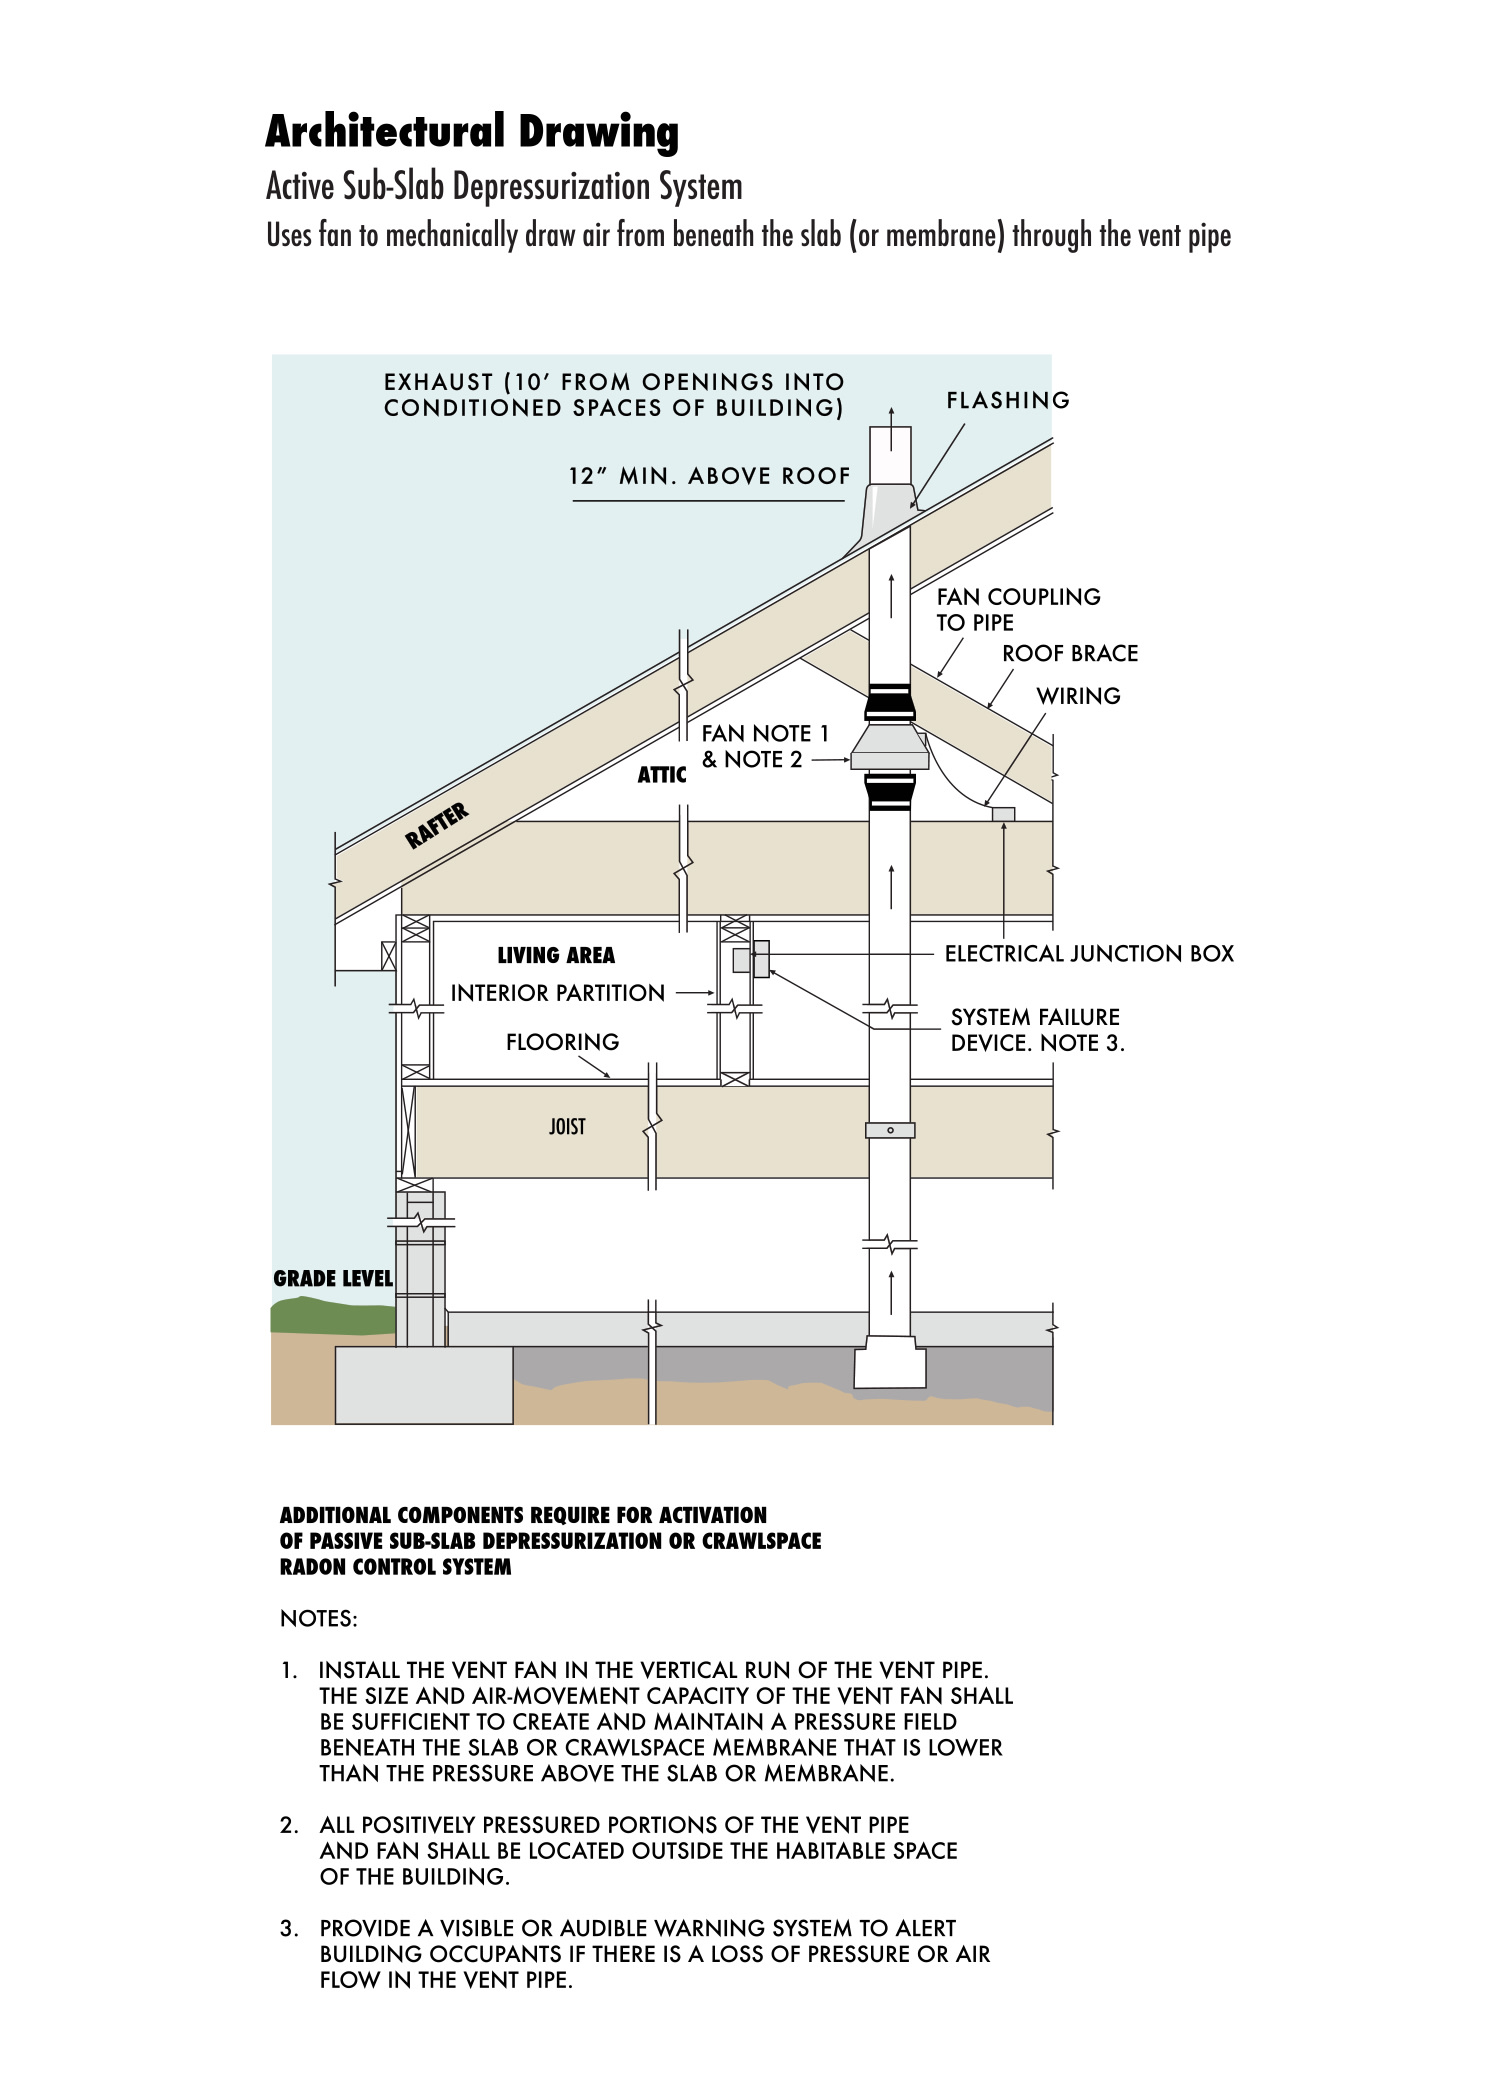 Architectural drawing of active radon system.